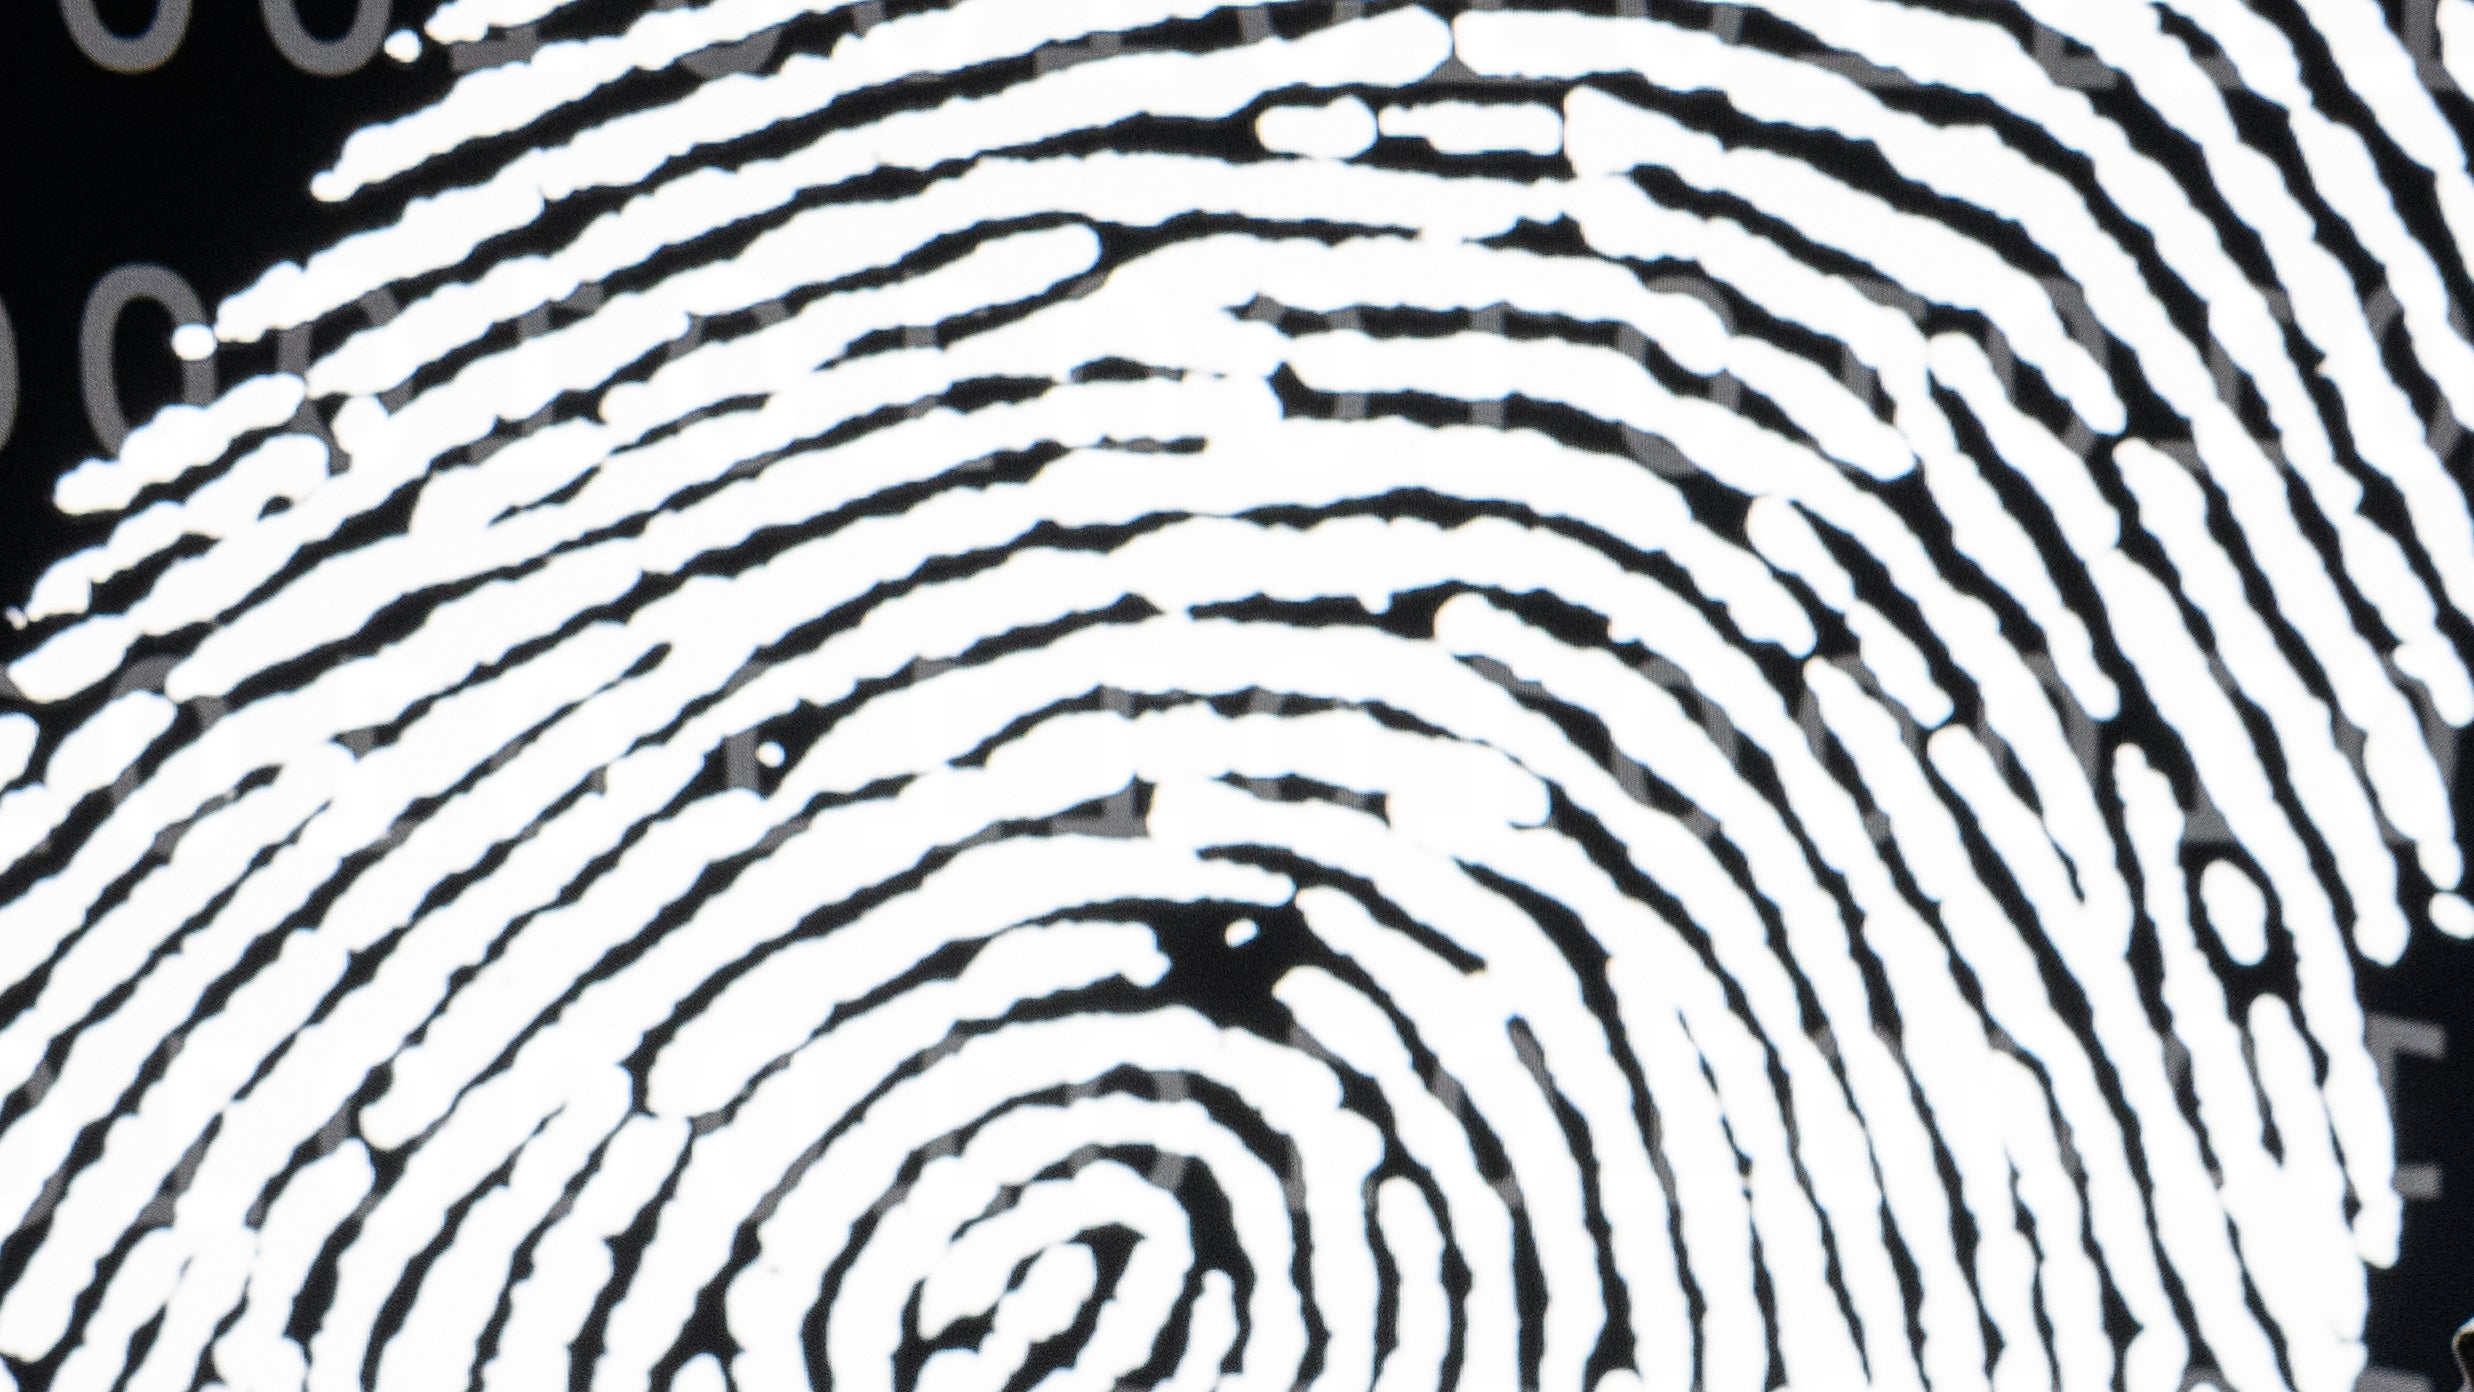 AI Can Now Fake Fingerprints That Fool Biometric ID Scanners